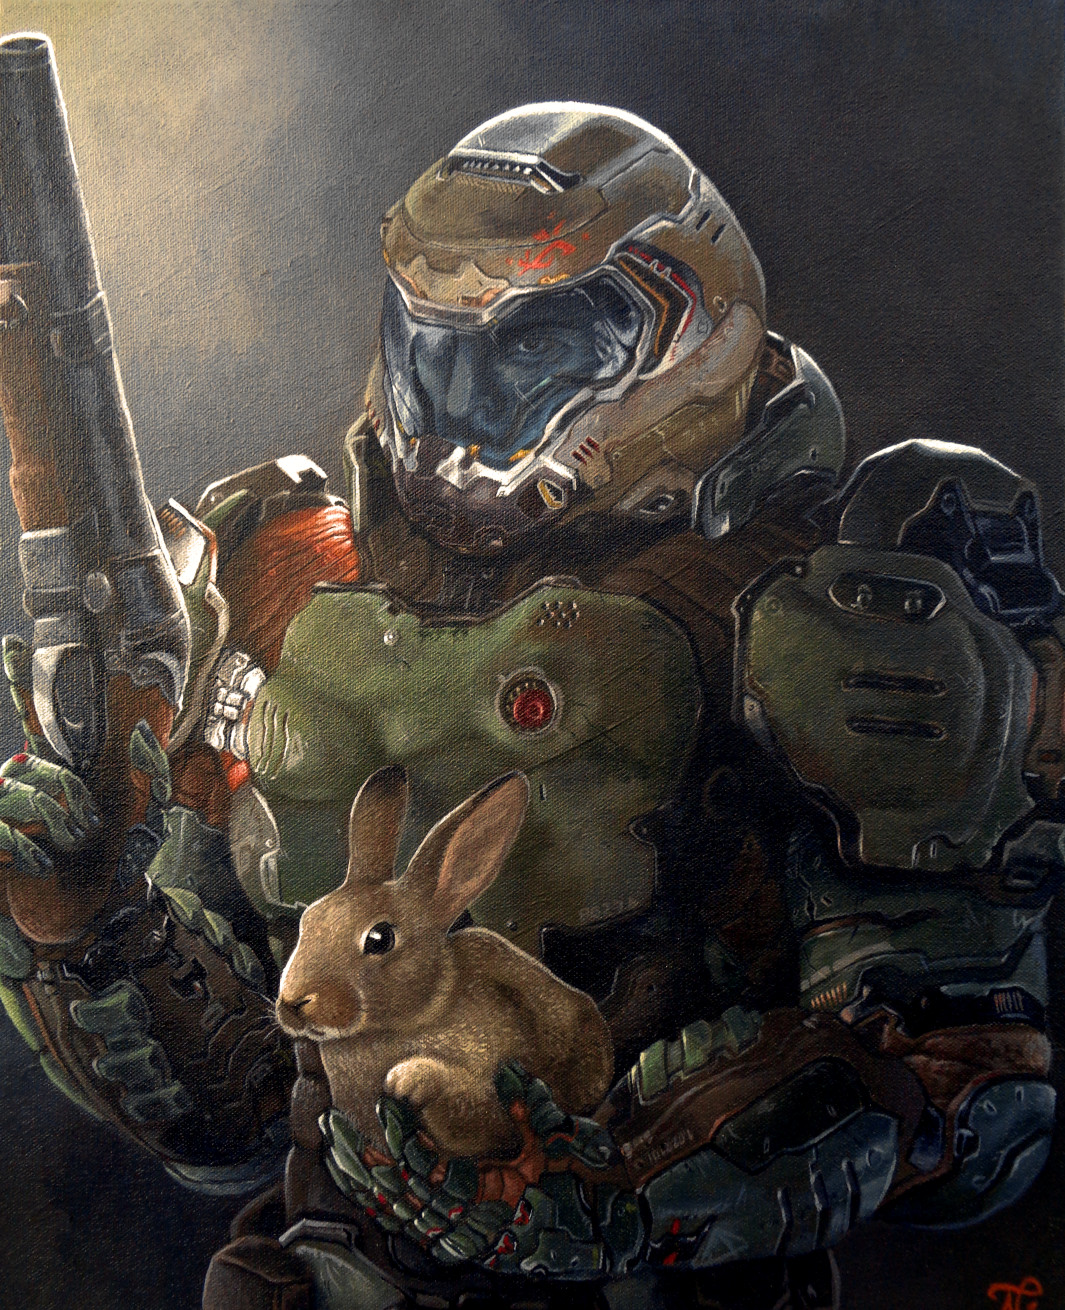 ArtStation - Doom Slayer and Daisy - DOOM 2016, Ian Nielsen